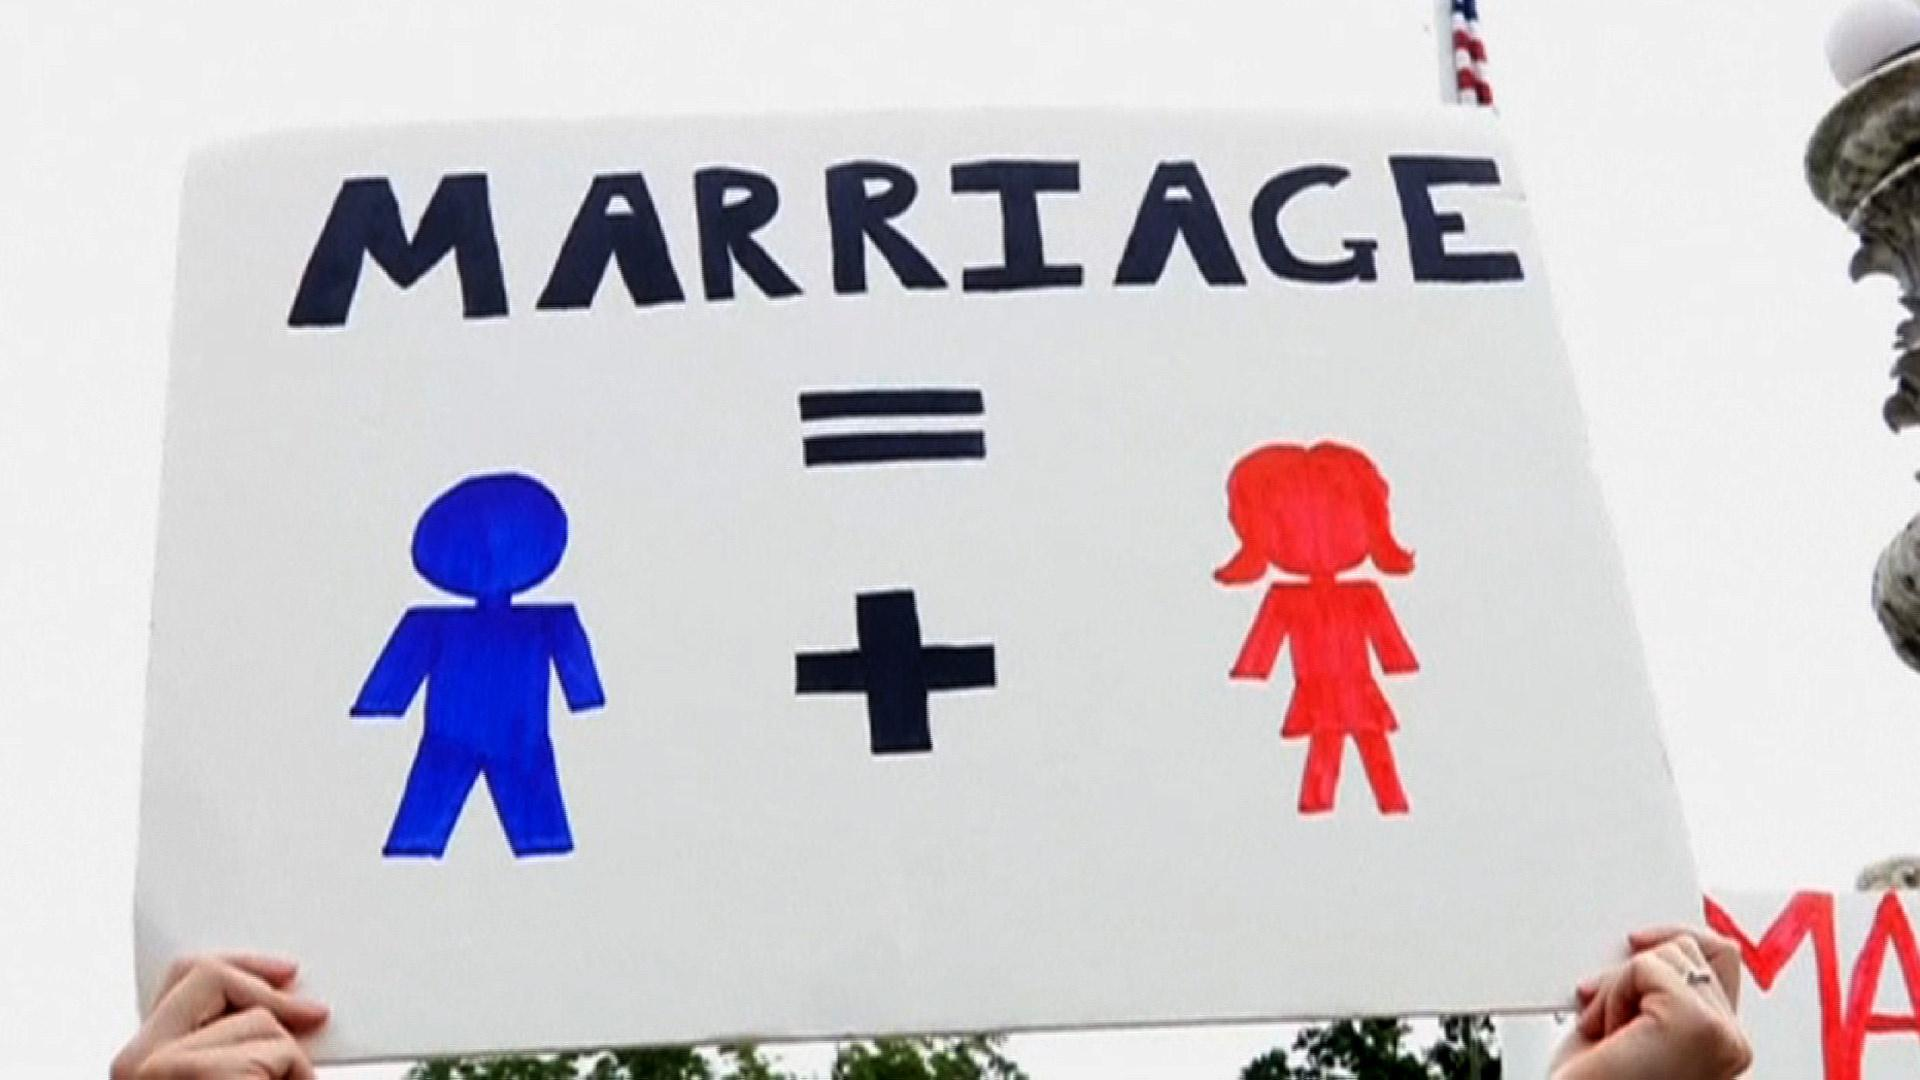 religion morality and worldview in public Abstract : some same-sex marriage activists might wish to exclude certain moral and religious viewpoints from the same-sex marriage debate evidence shows.